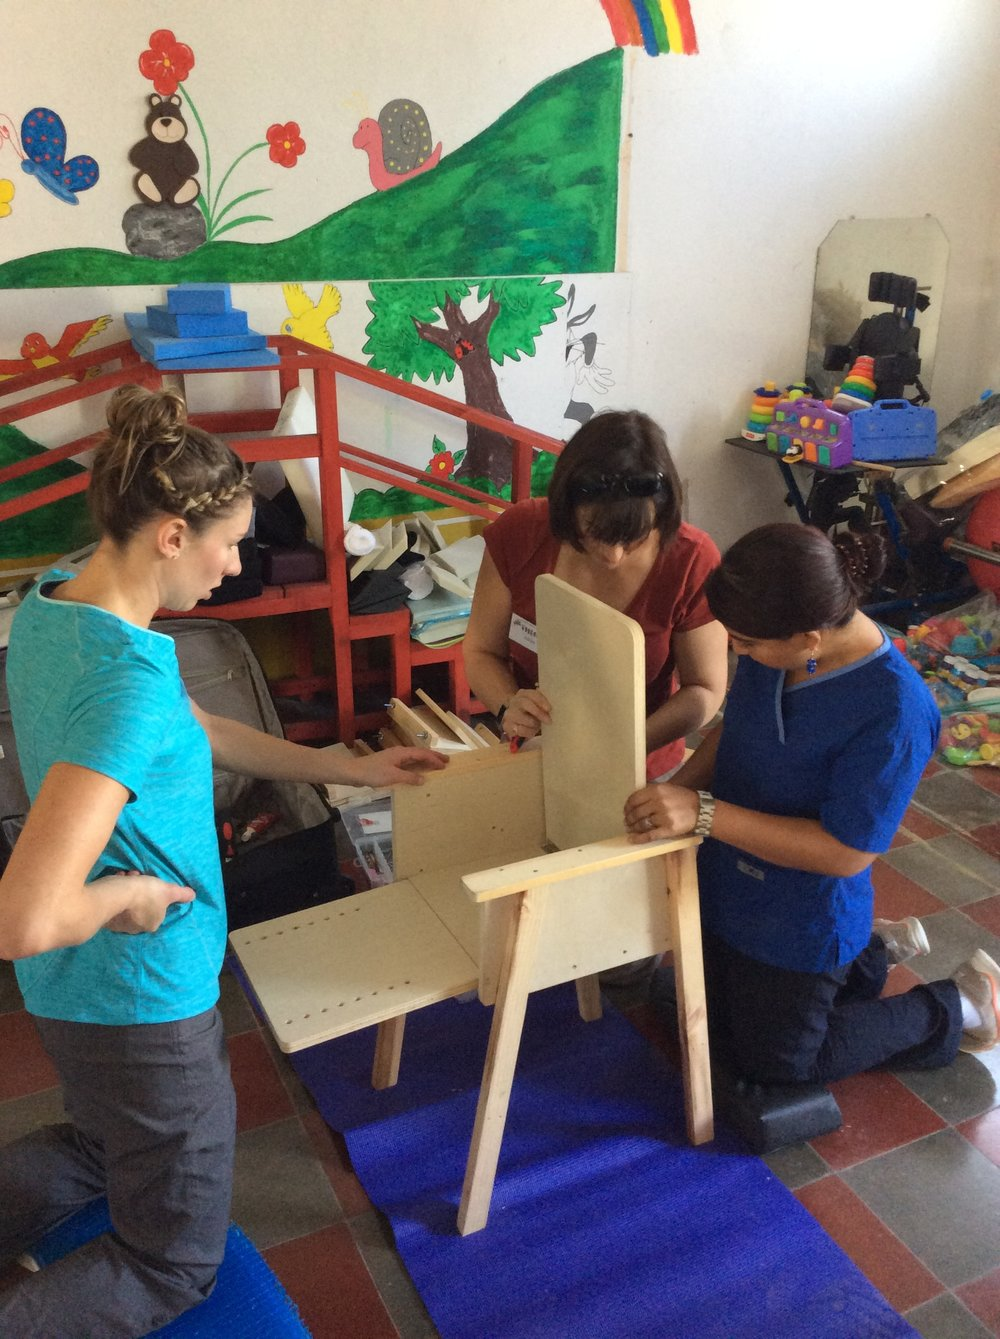 Our team is hard at work constructing one of our magic chairs for a little patient. The chairs were a big hit with so many families who don't have kid-size chairs to give their children the support they need to sit and participate in daily activities.